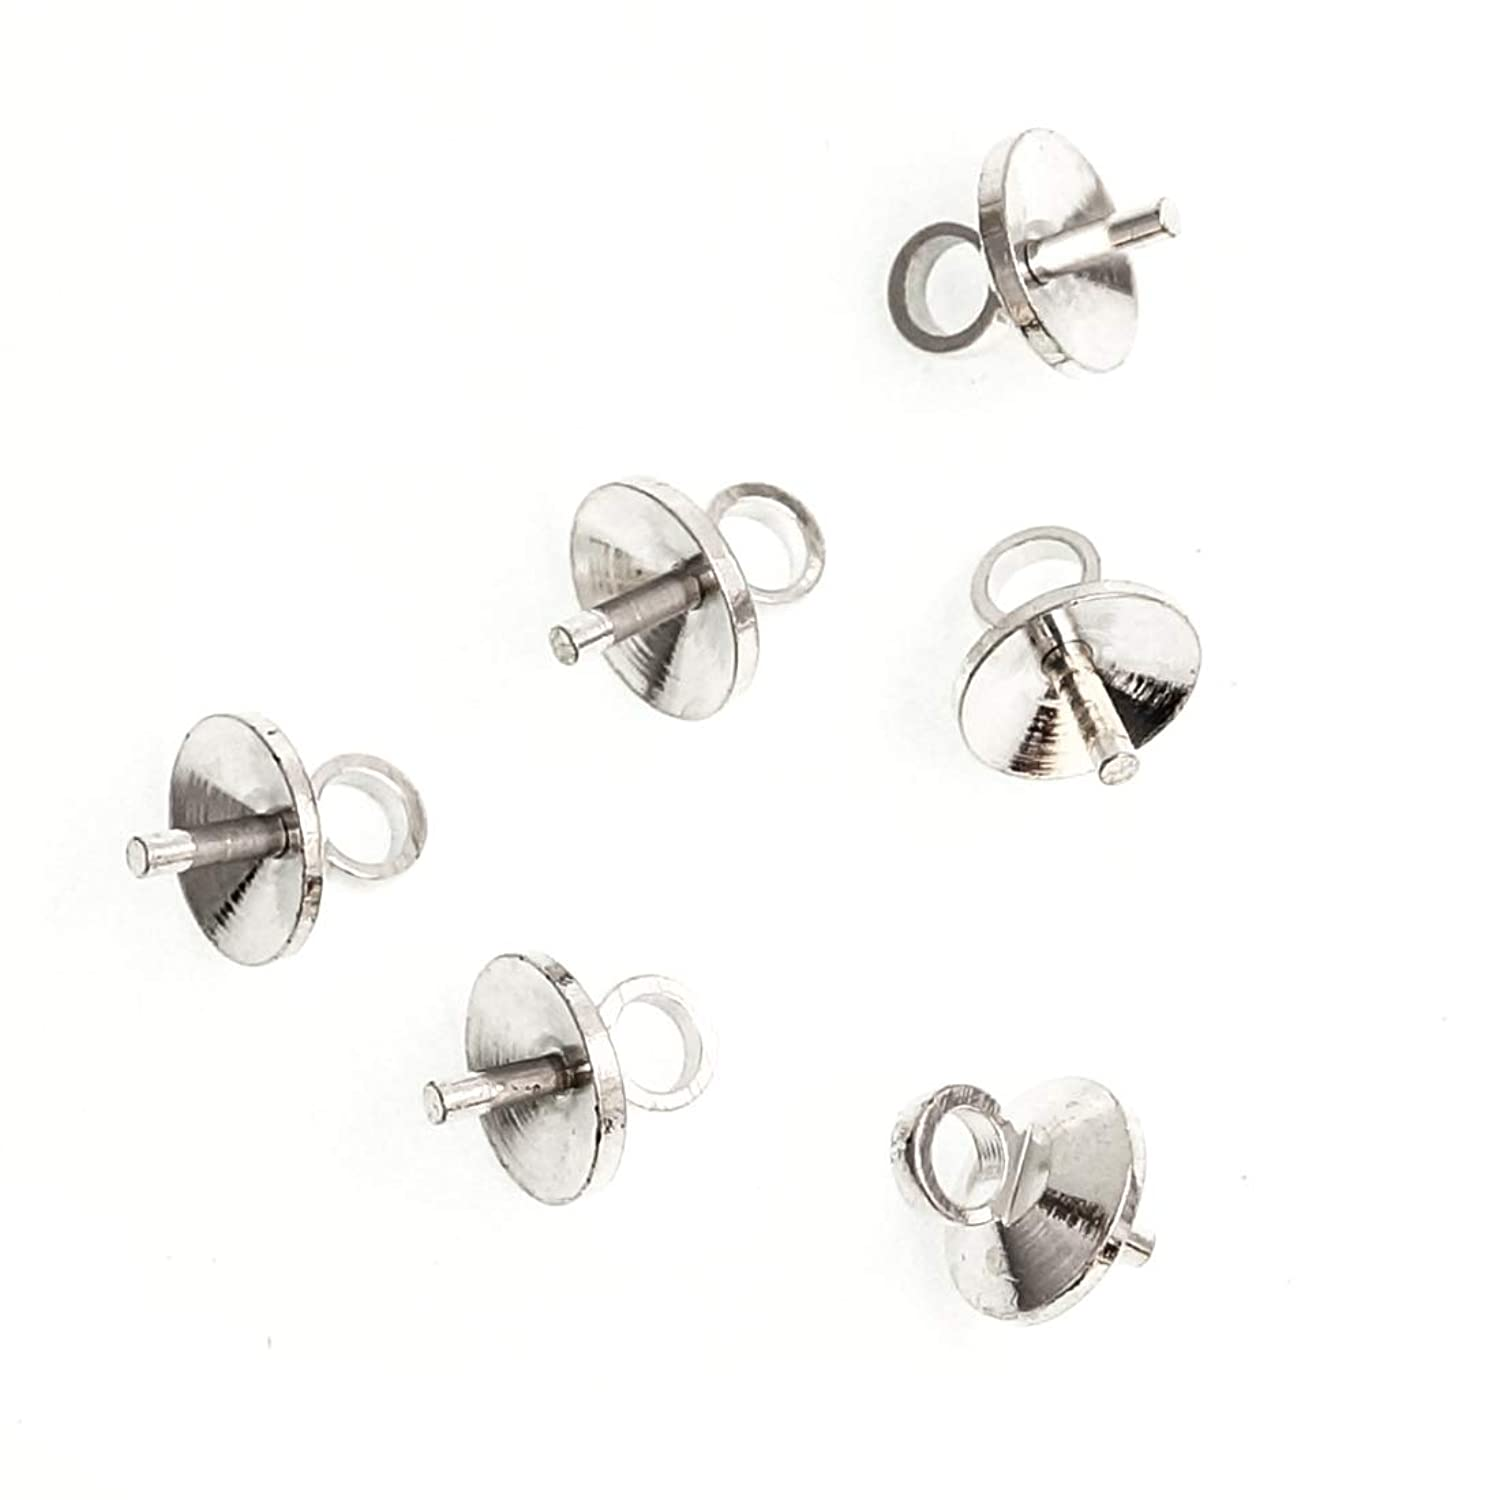 100pcs Top Quality Eye Pin Bail Charm Pendant Connectors 4mm Pearl Cup Sterling Silver Plated Brass Jewelry Craft Making Supplies CF226-4